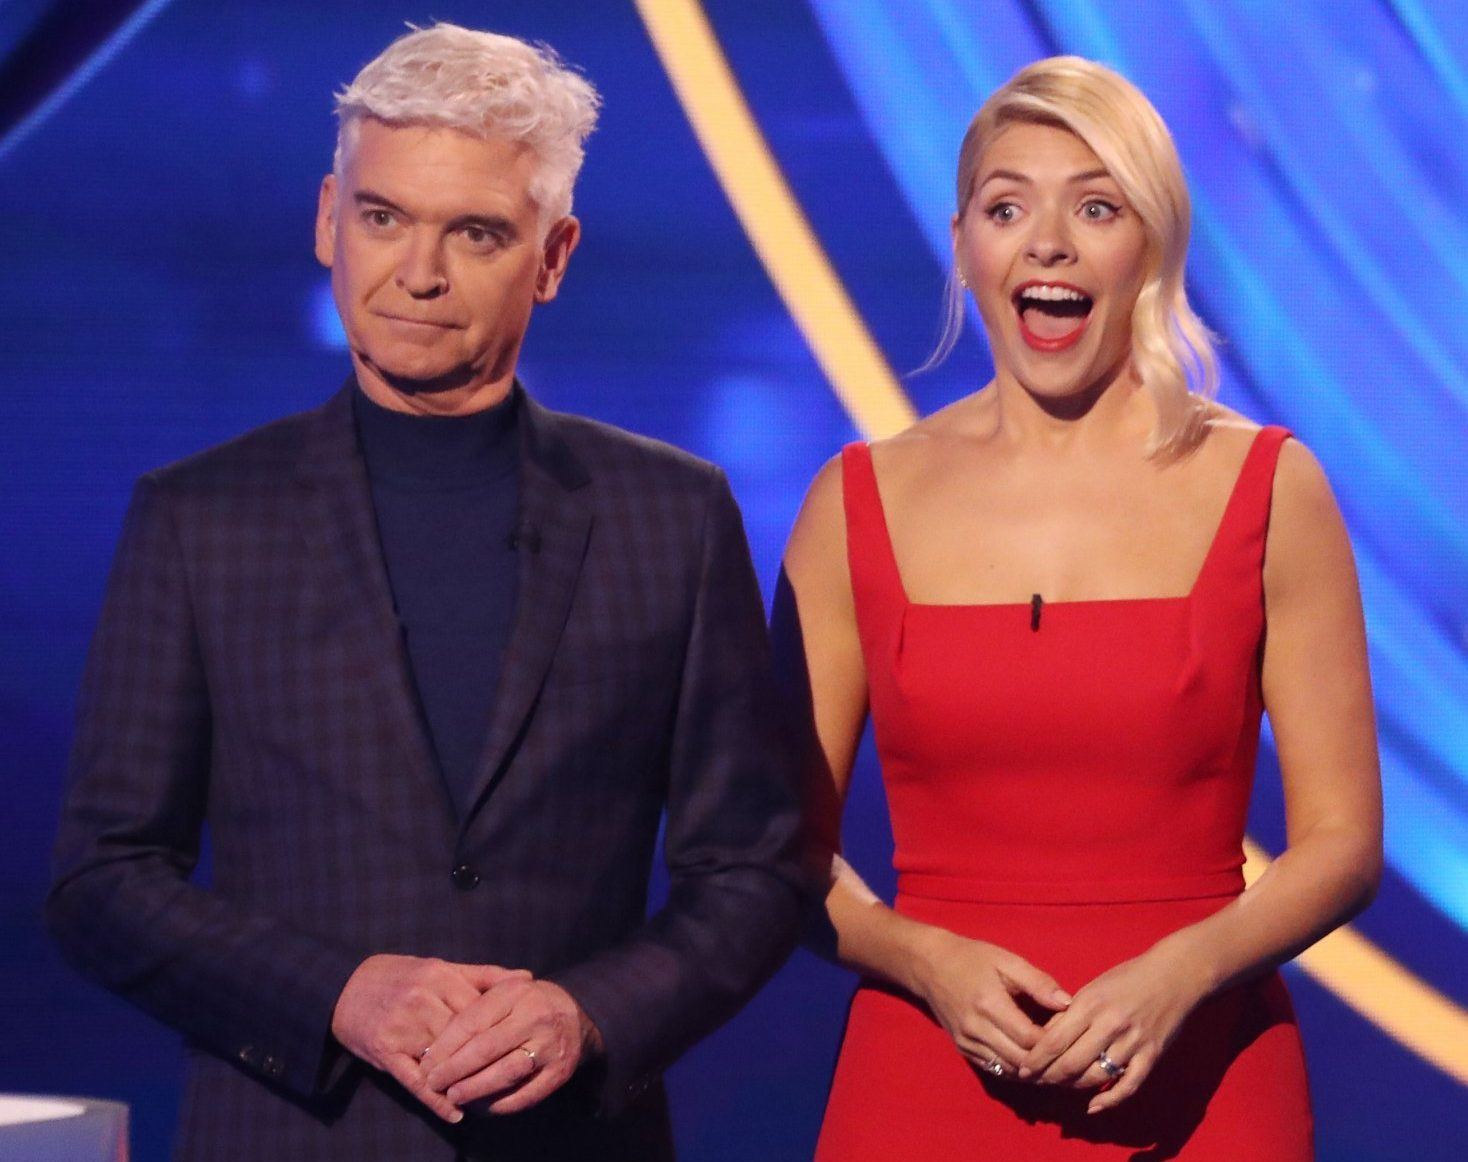 Editorial use only Mandatory Credit: Photo by Matt Frost/ITV/REX (10073862fn) Phillip Schofield, Holly Willoughby, Saira Khan and Mark Hanretty 'Dancing on Ice' TV show, Series 11, Episode 4, Hertfordshire, UK - 27 Jan 2019